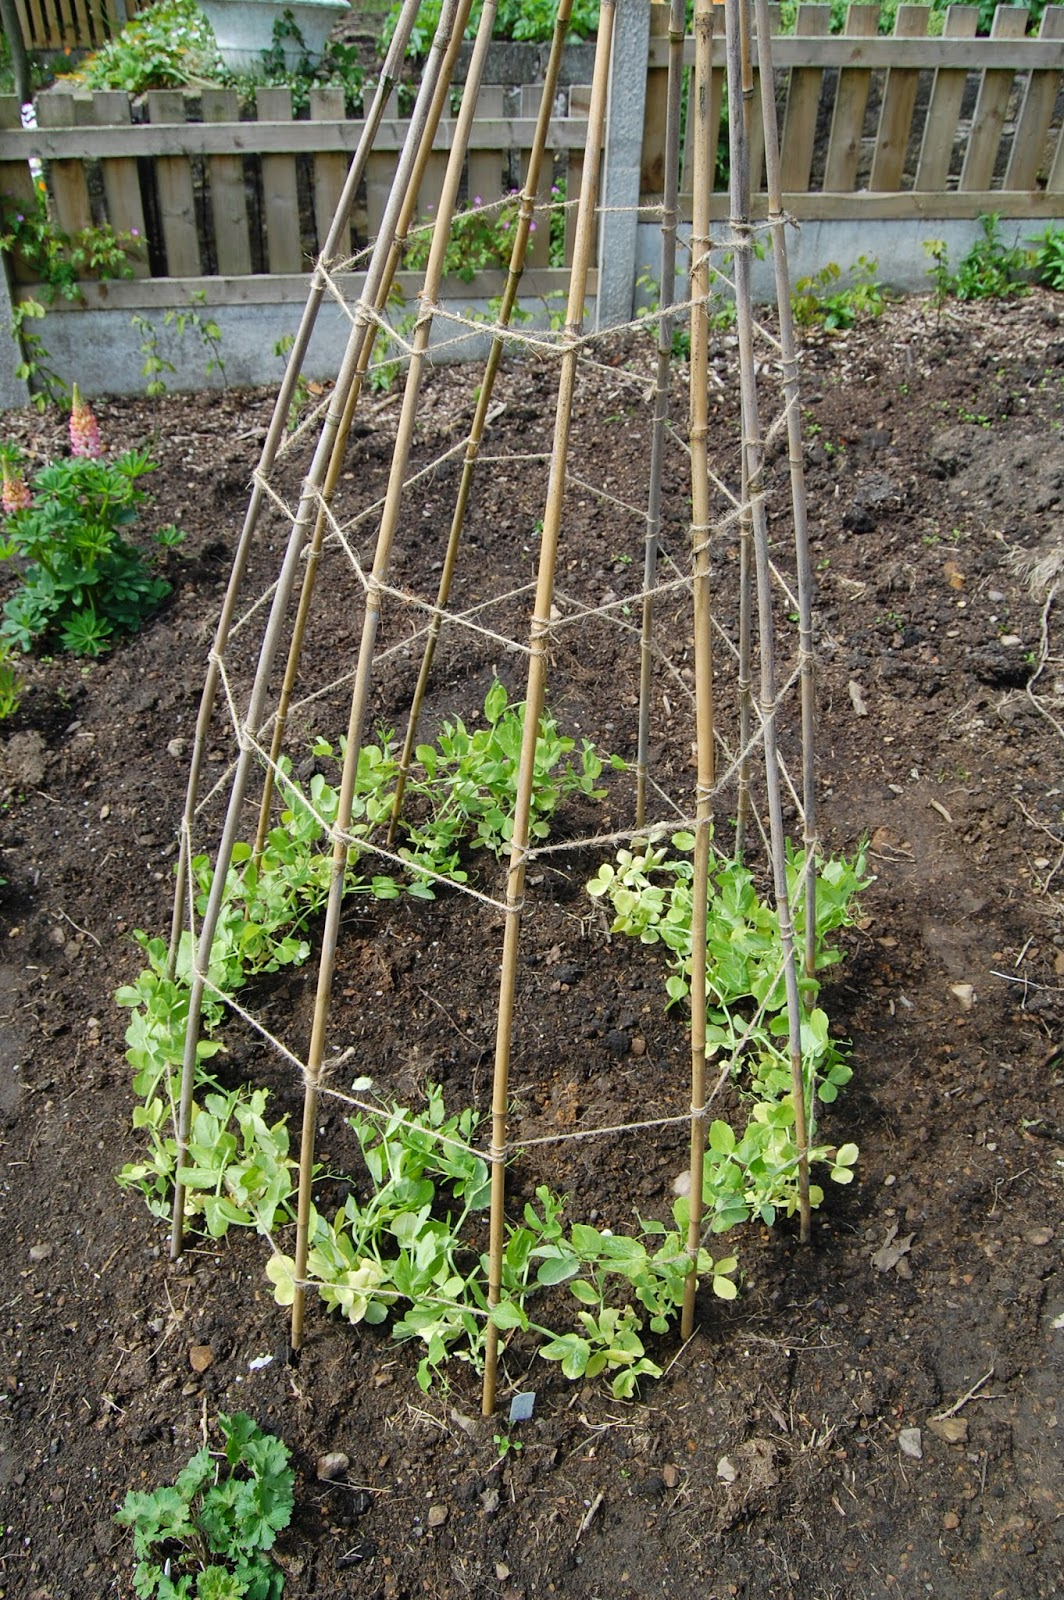 Peas don't have to be in open ground #lifeonpigrow